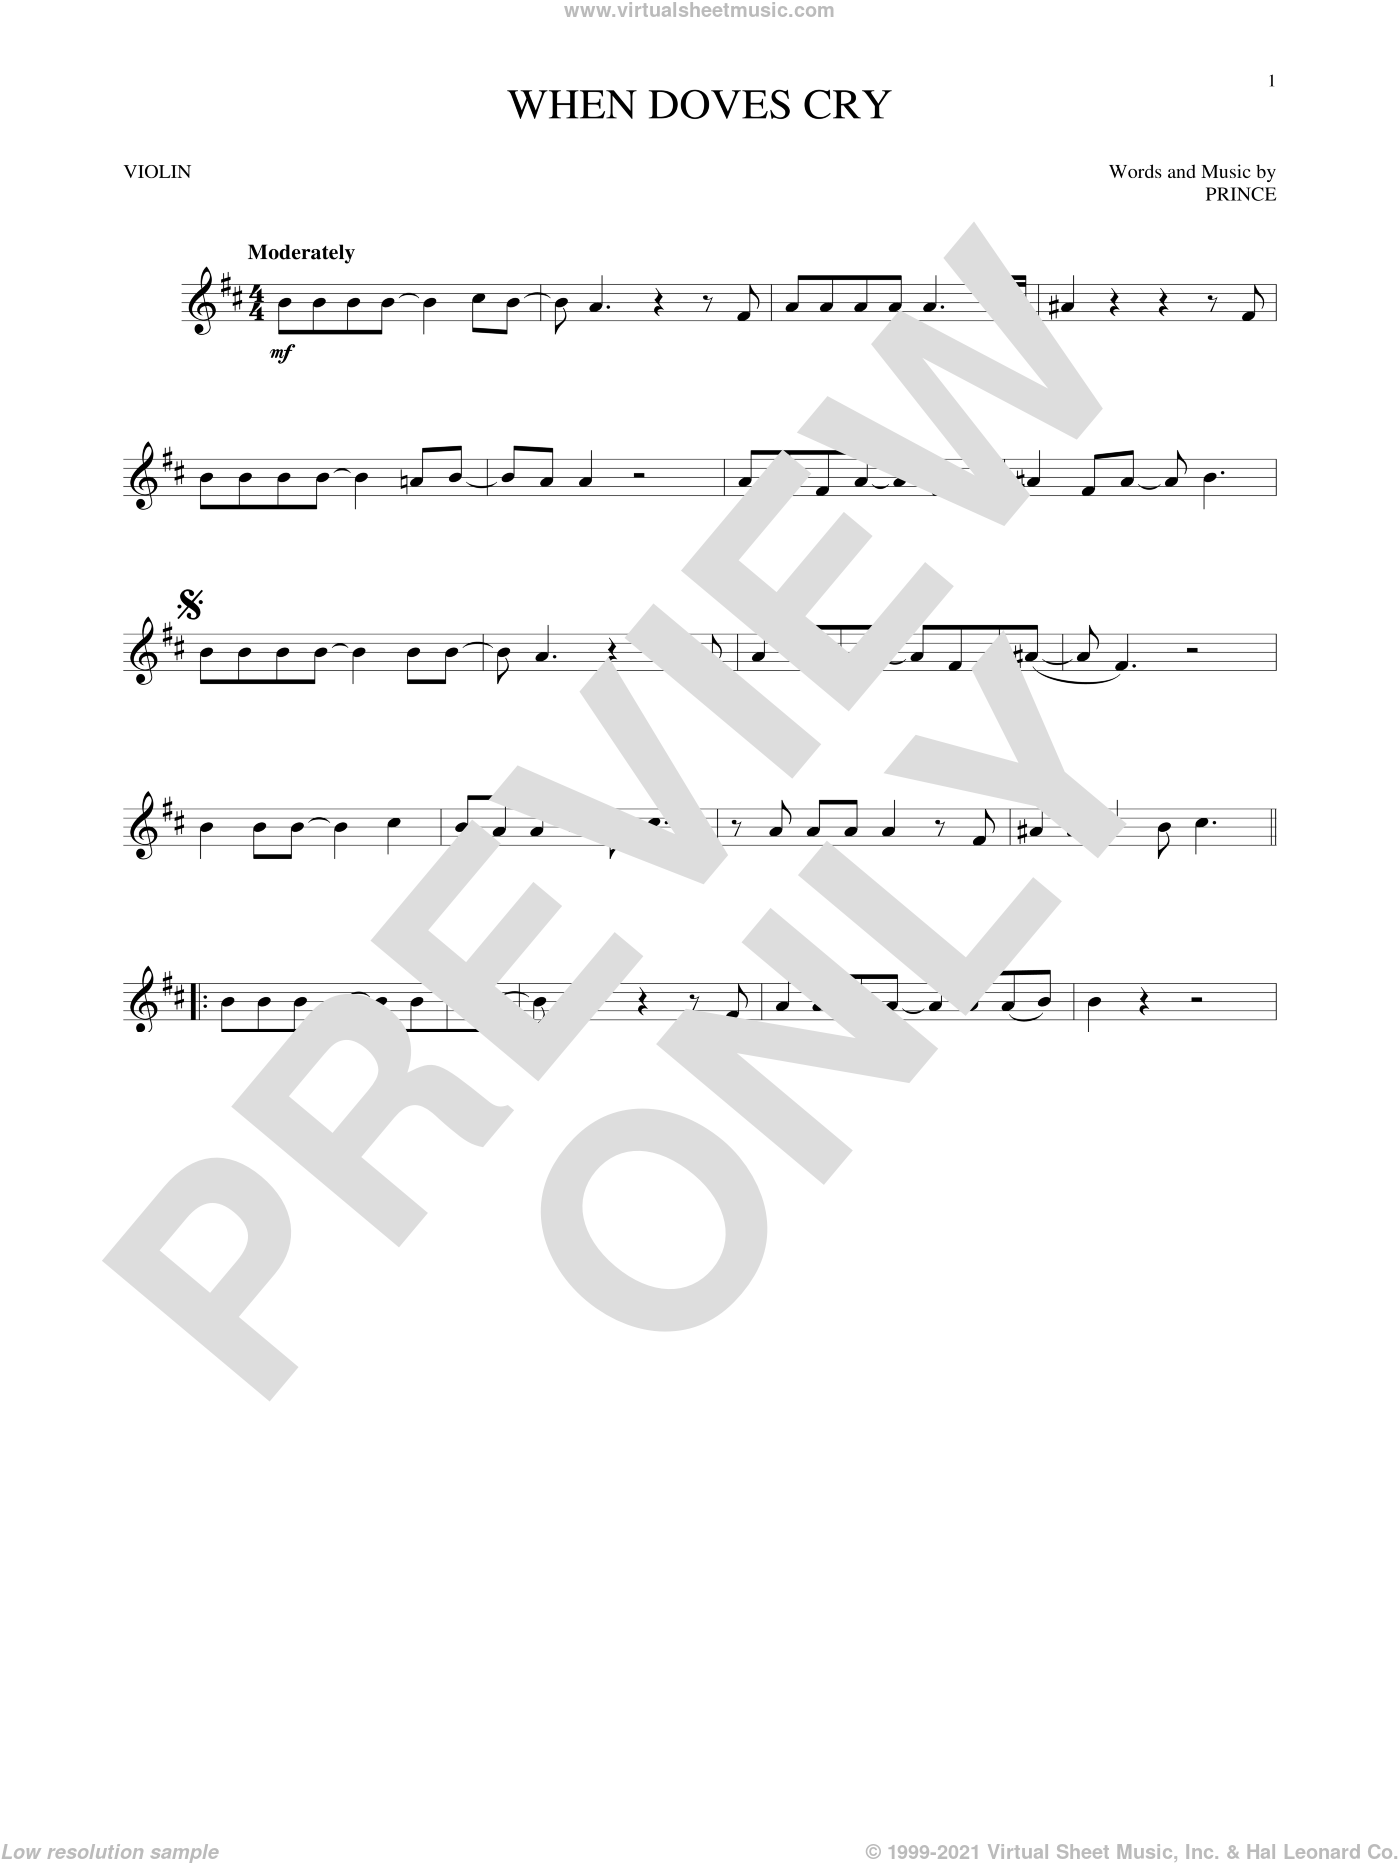 When Doves Cry sheet music for violin solo by Prince, intermediate skill level